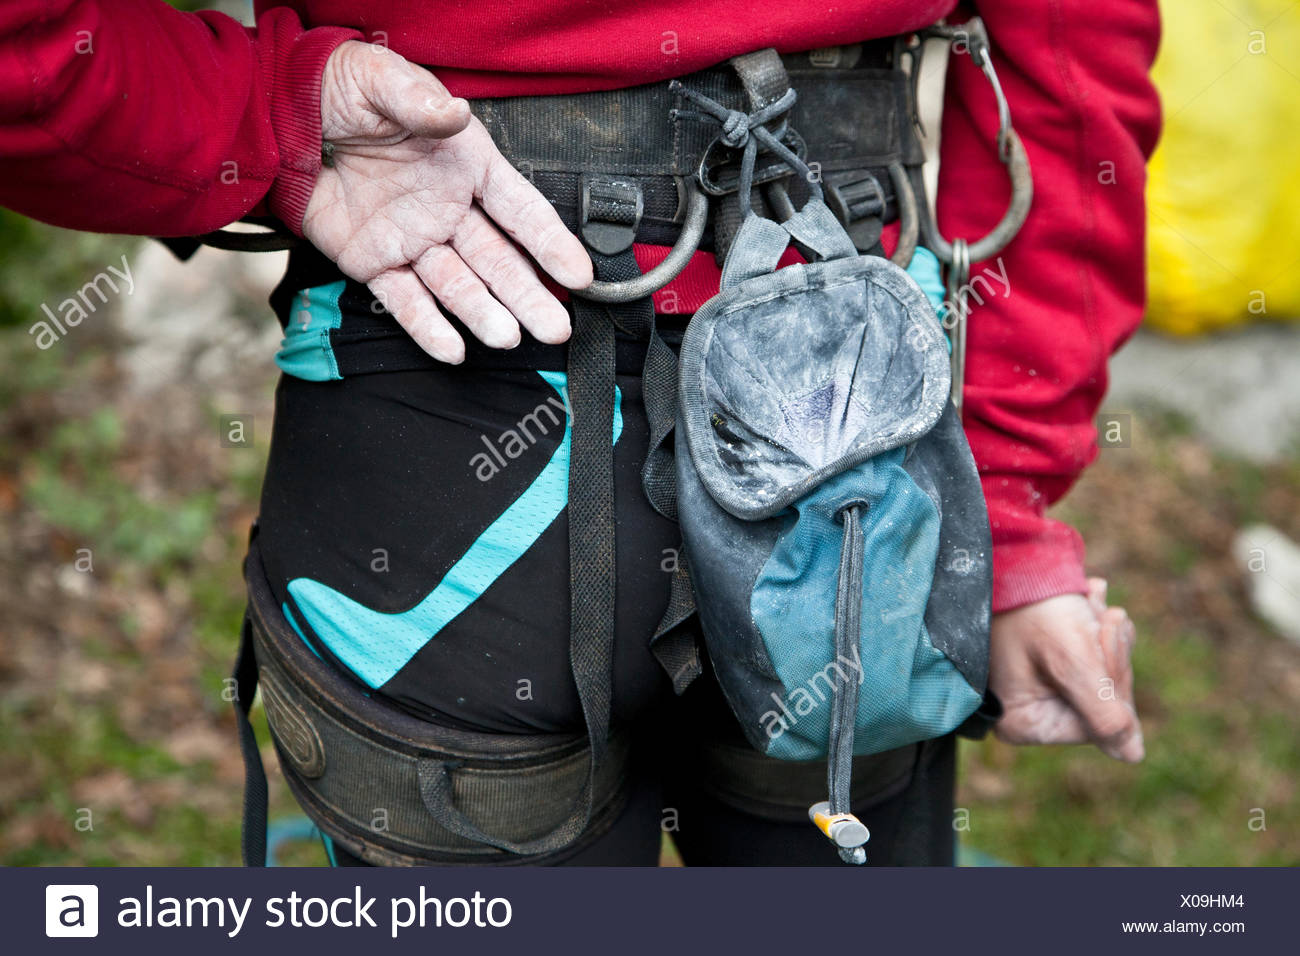 Italy, Midsection of female rock climber - Stock Image